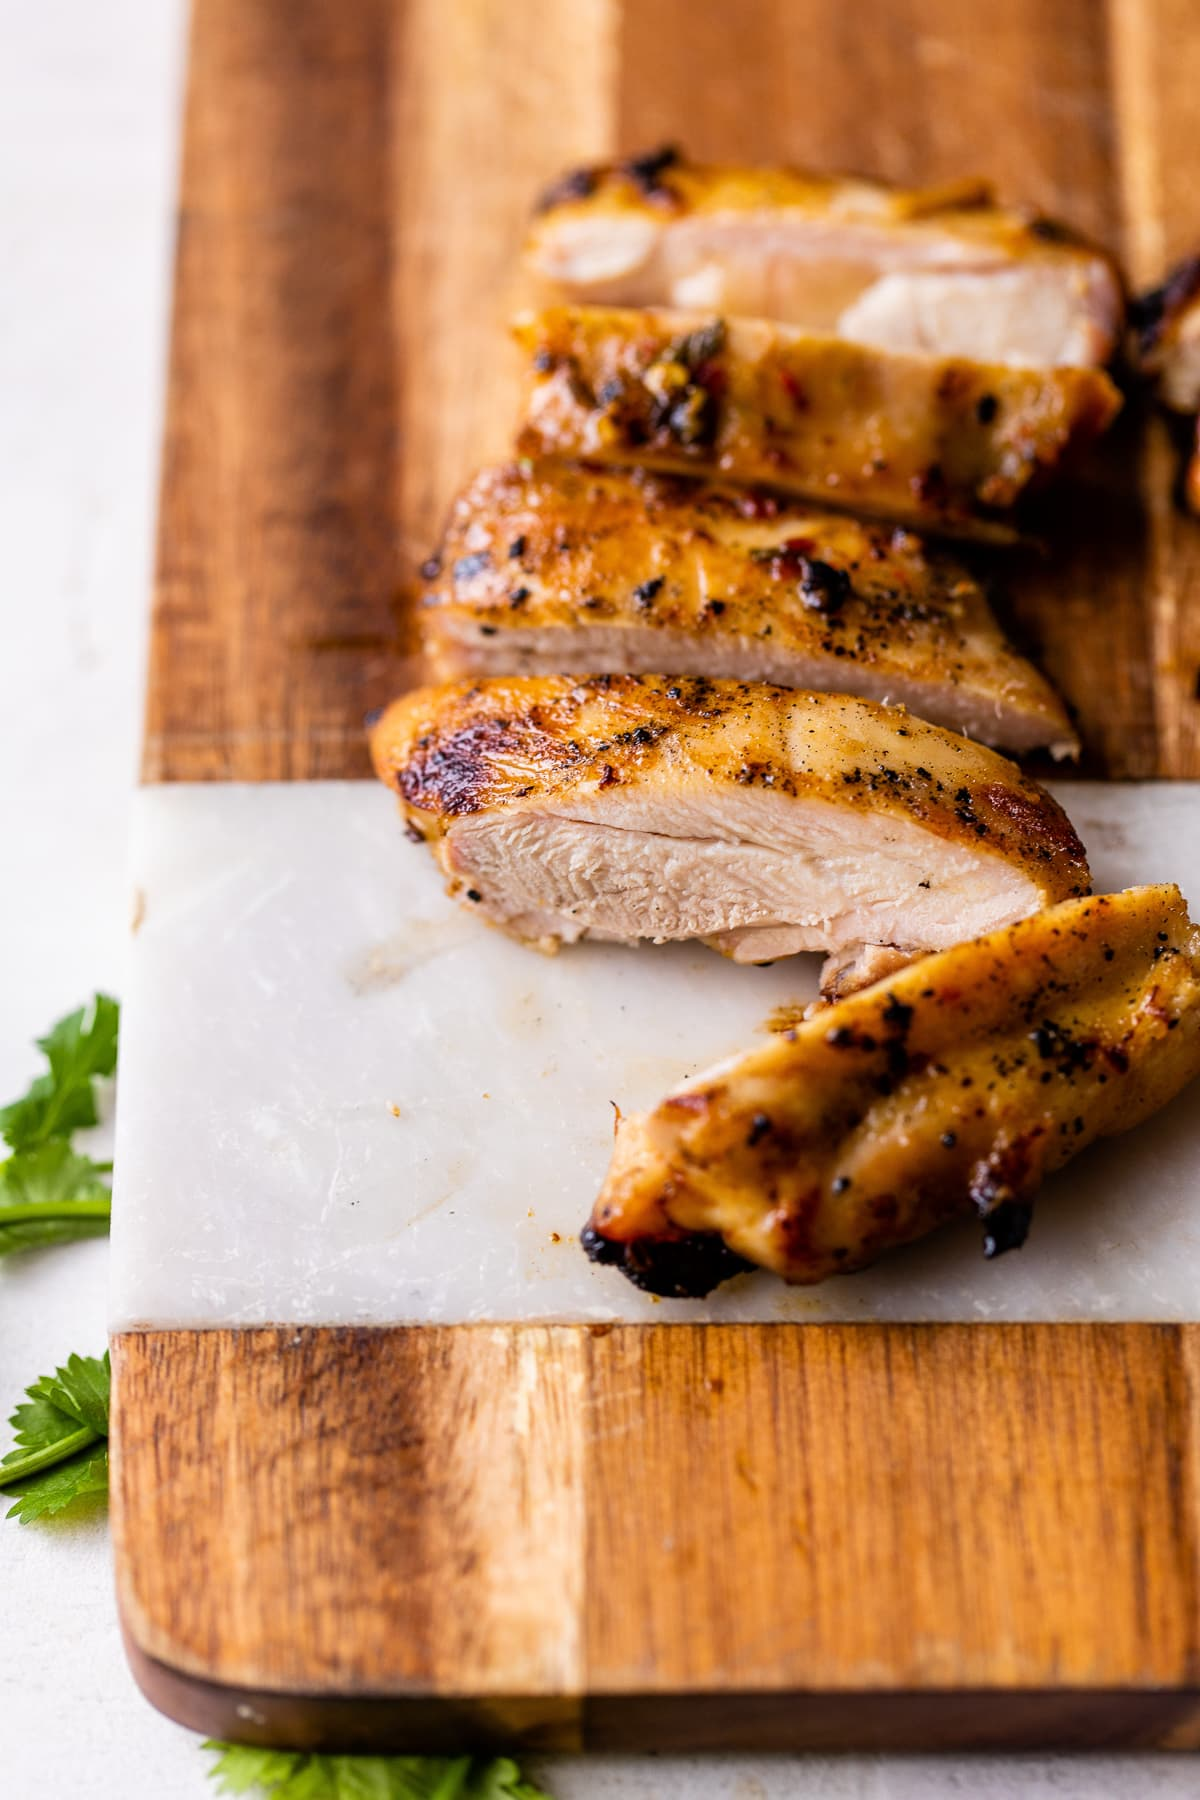 Sliced juicy lime marinated chicken on a cutting board.